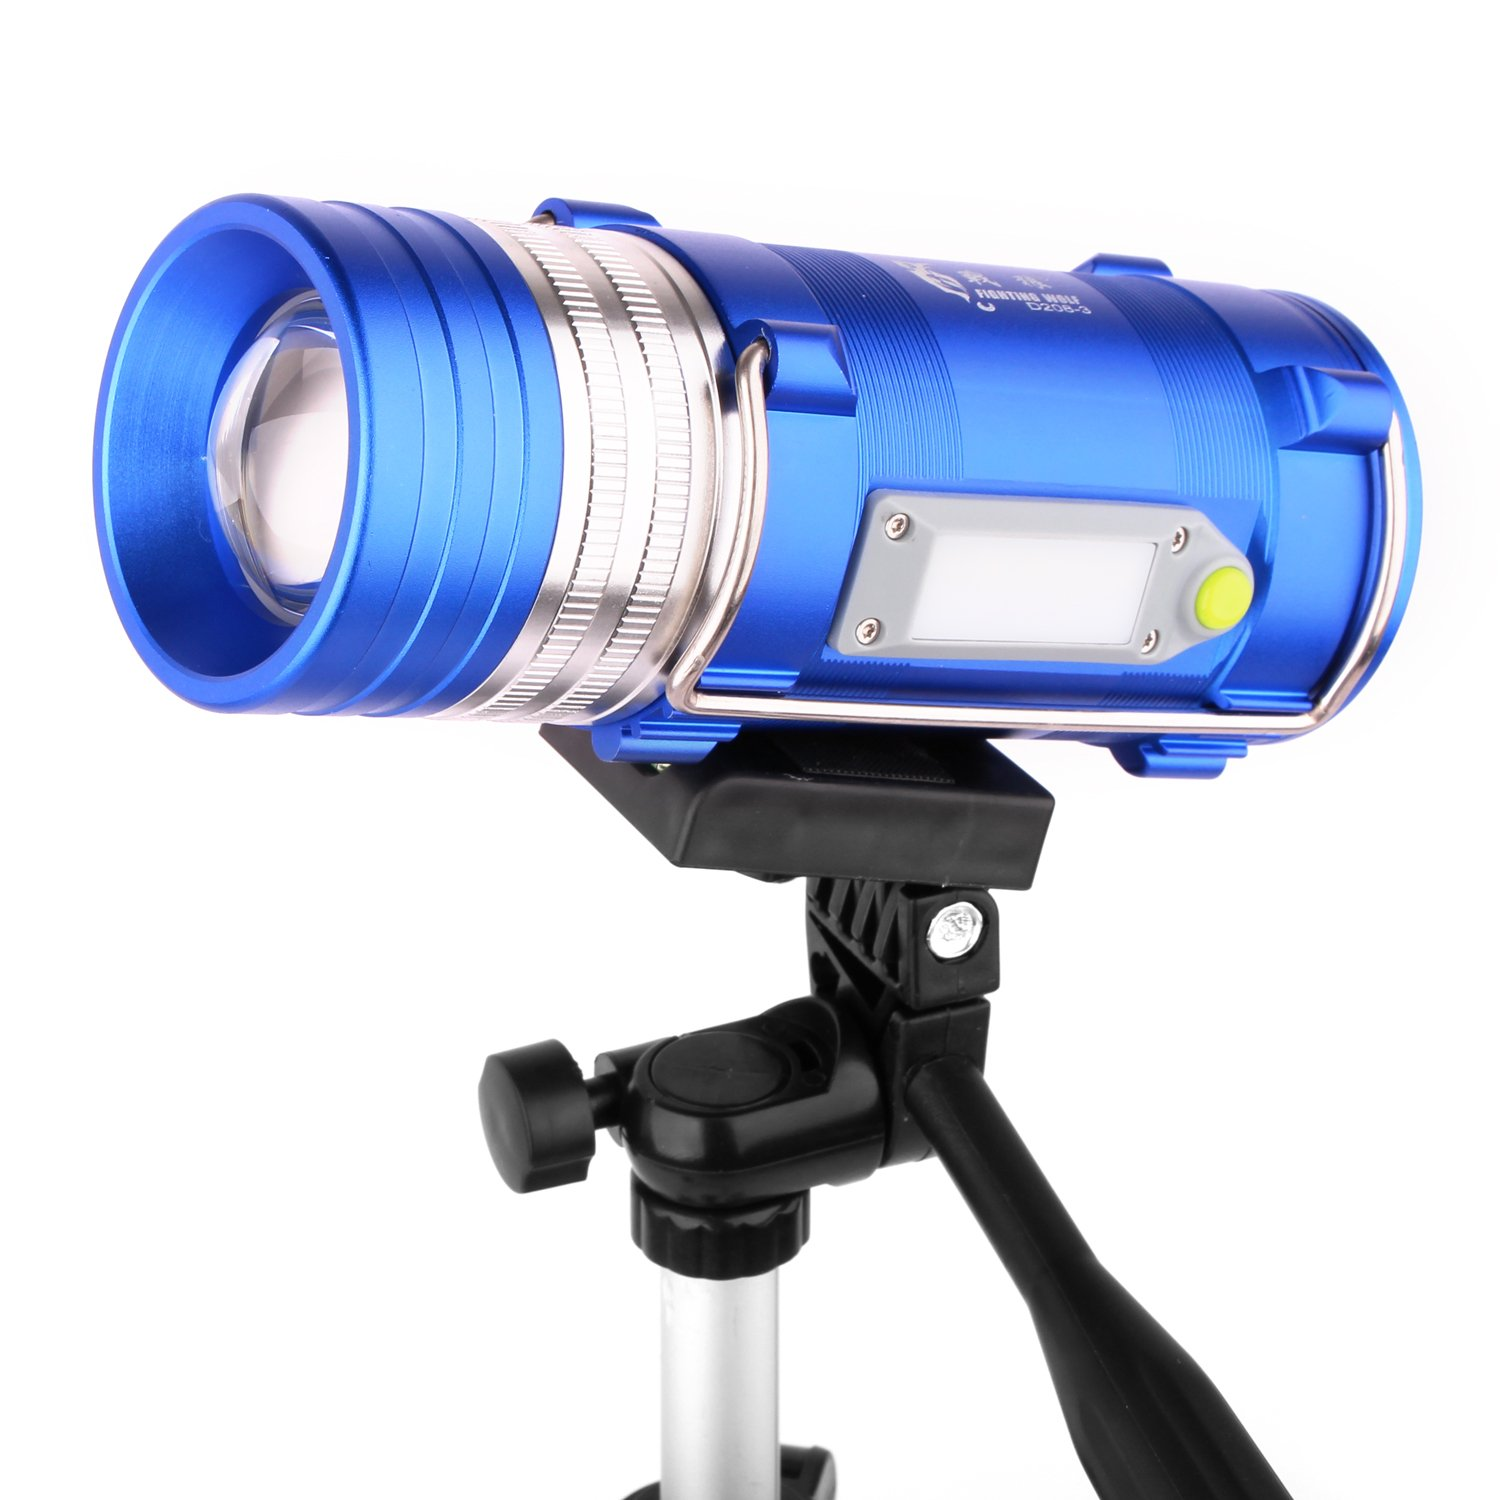 Fishing Light with Tripod Professional Waterproof Multi-functional Fishing Lamp Four LED Light Modes with Tripod,Perfect for Fishing, Hunting, Camping